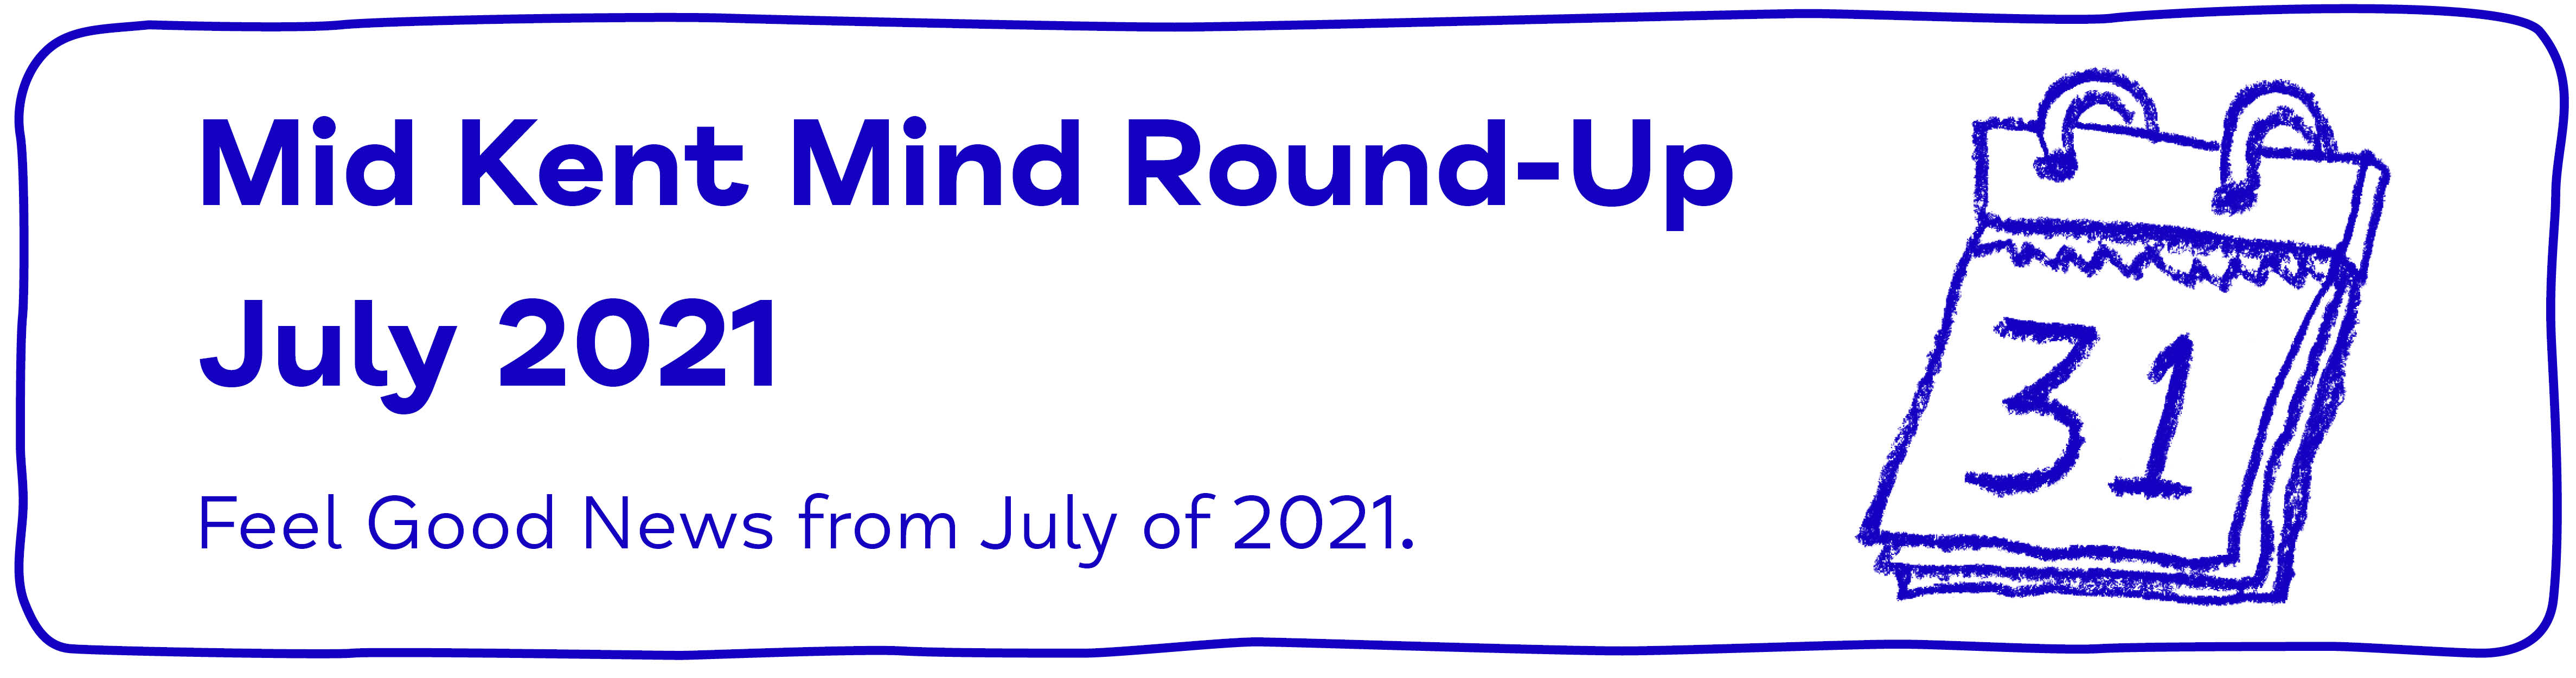 Mid Kent Mind Round-Up July 2021 Feel Good News from July of 2021 - Mid Kent Mind Newsletter - July 2021